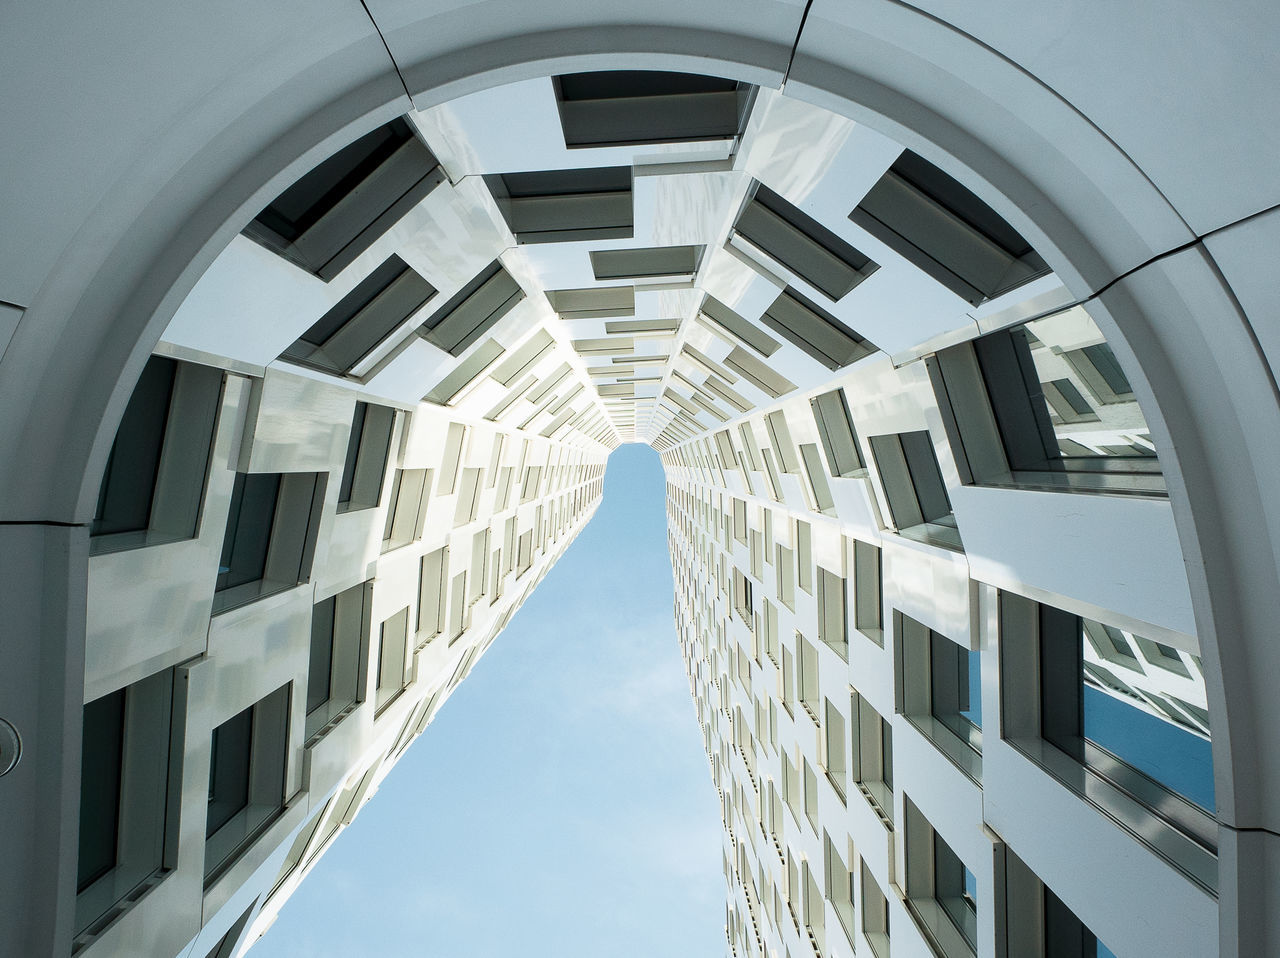 Architecture Building Exterior Built Structure City Day From My Point Of View Low Angle View Modern No People Outdoors Sky Skyscraper Thearchitect Eyeemawards2017 Window The Architect - 2017 EyeEm Awards